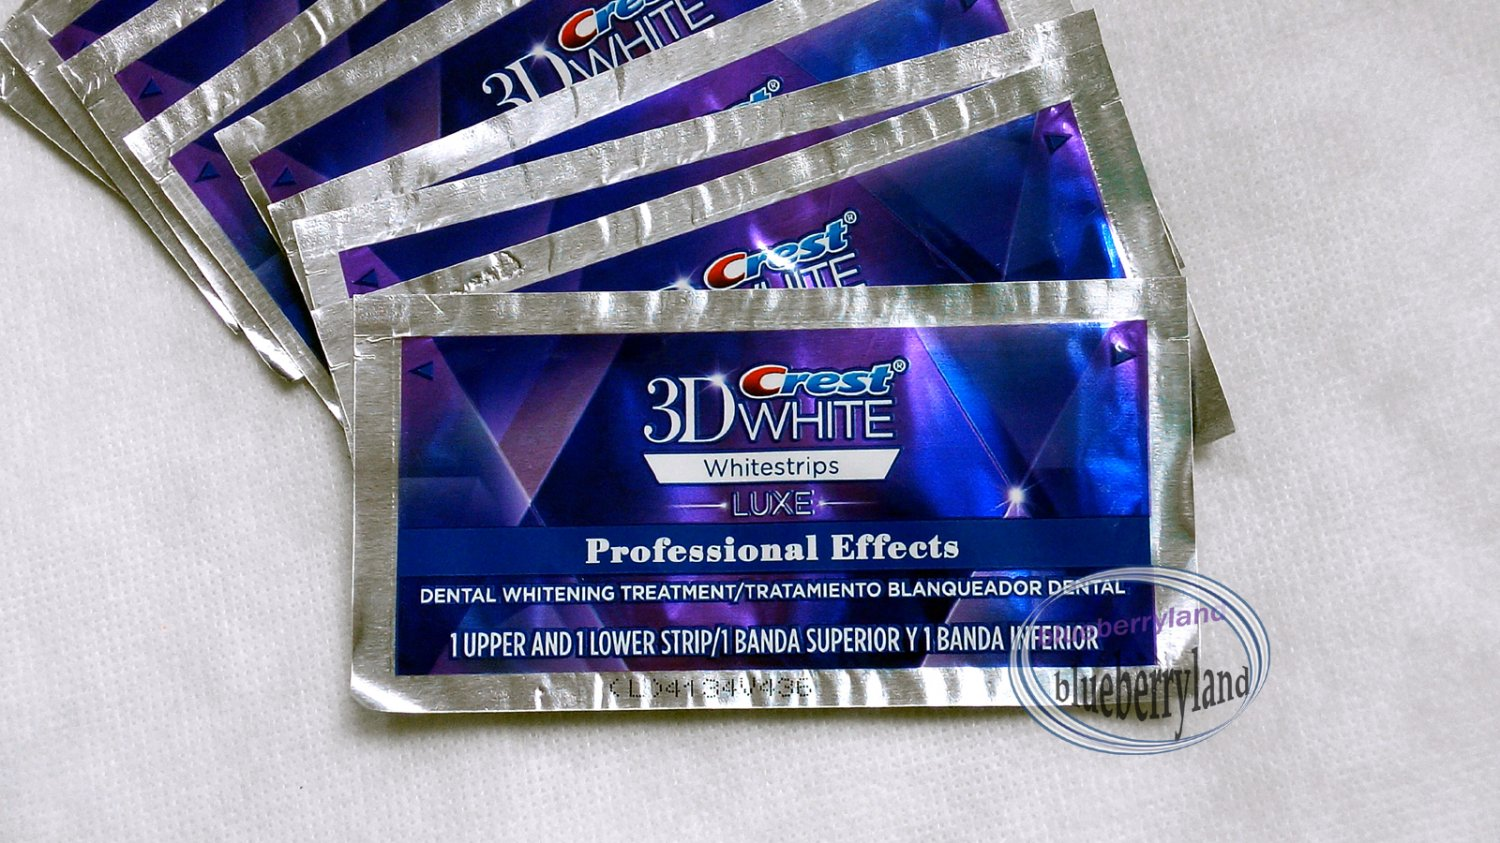 Crest 3D WHITE Whitestrips LUXE Professional Effects Teeth Whitening Power 10 Strip 5 Pouch